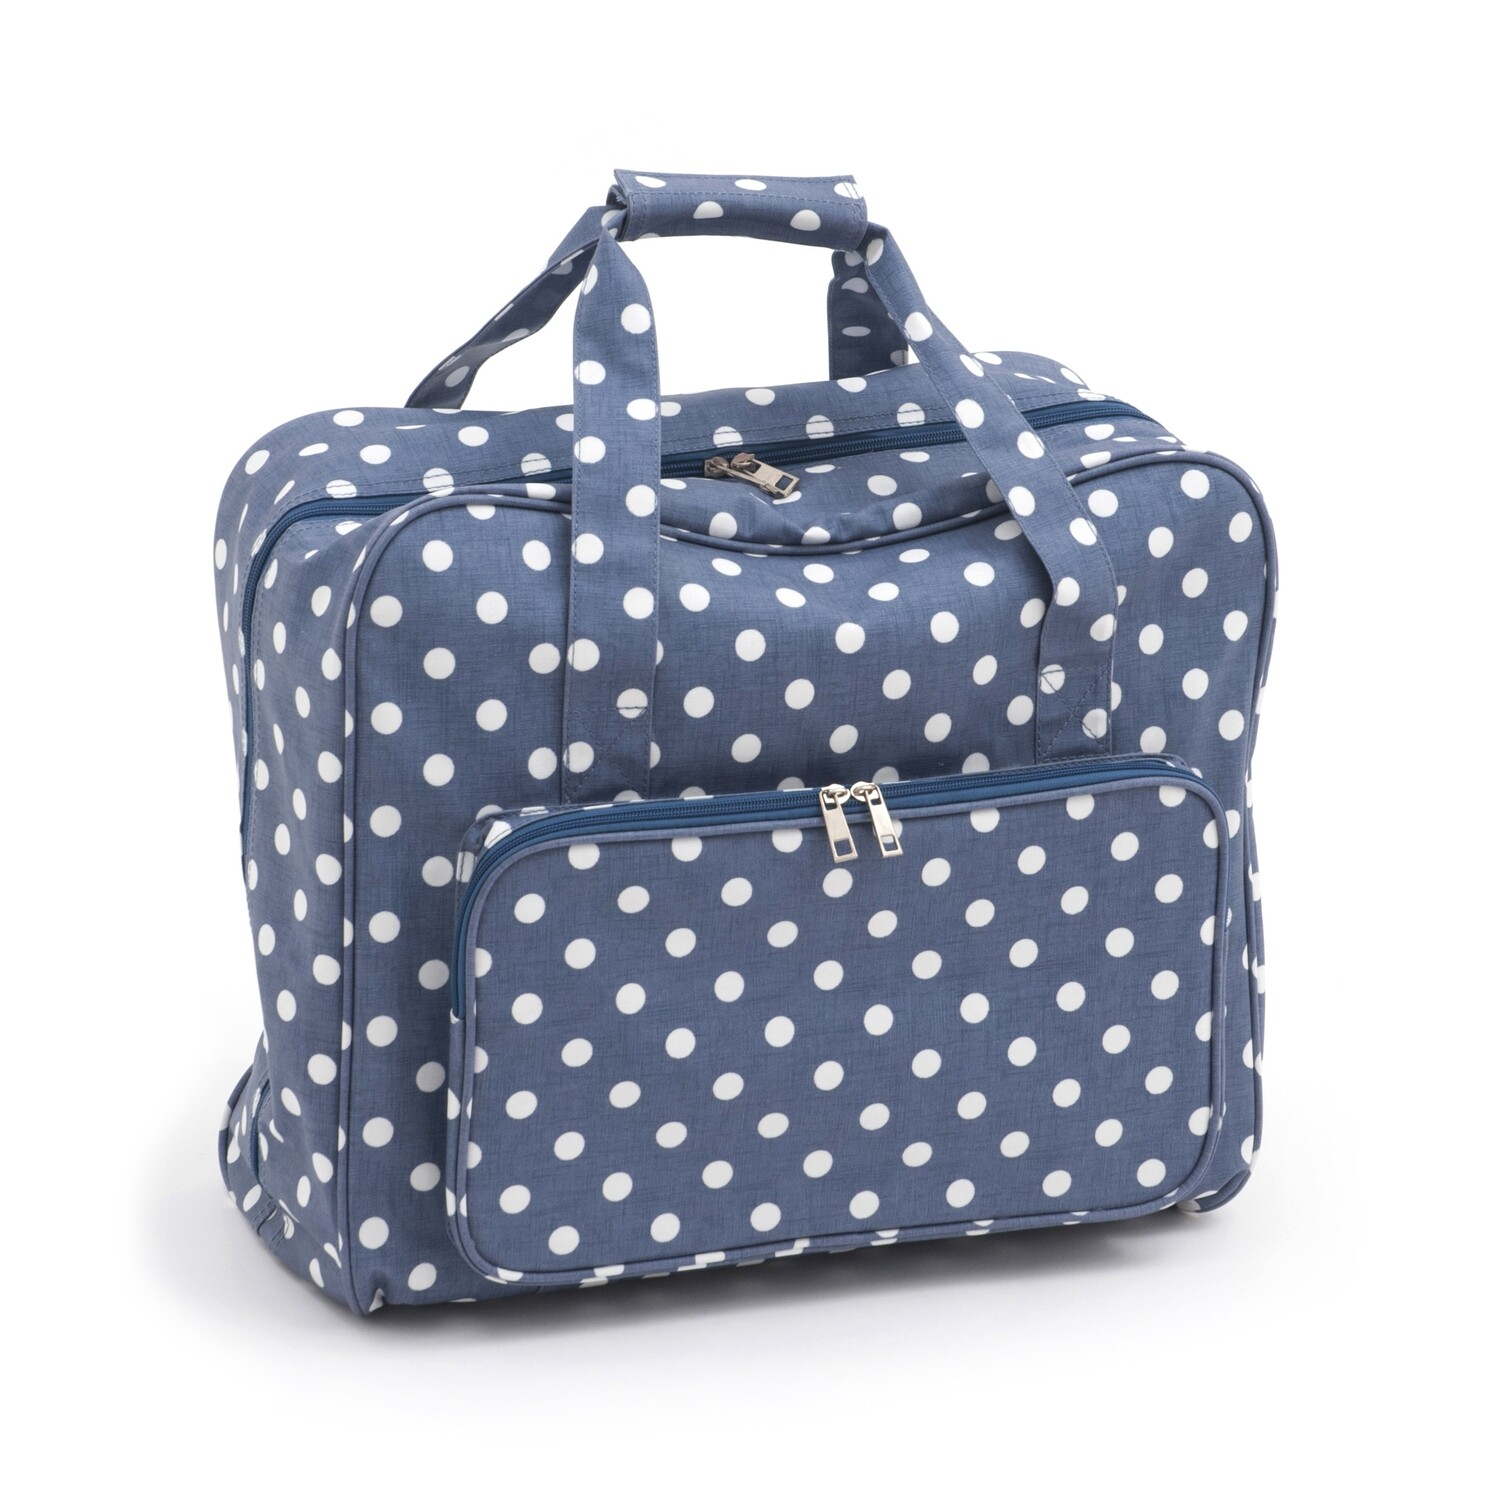 Sewing Machine Bag - Denim Polka Dot